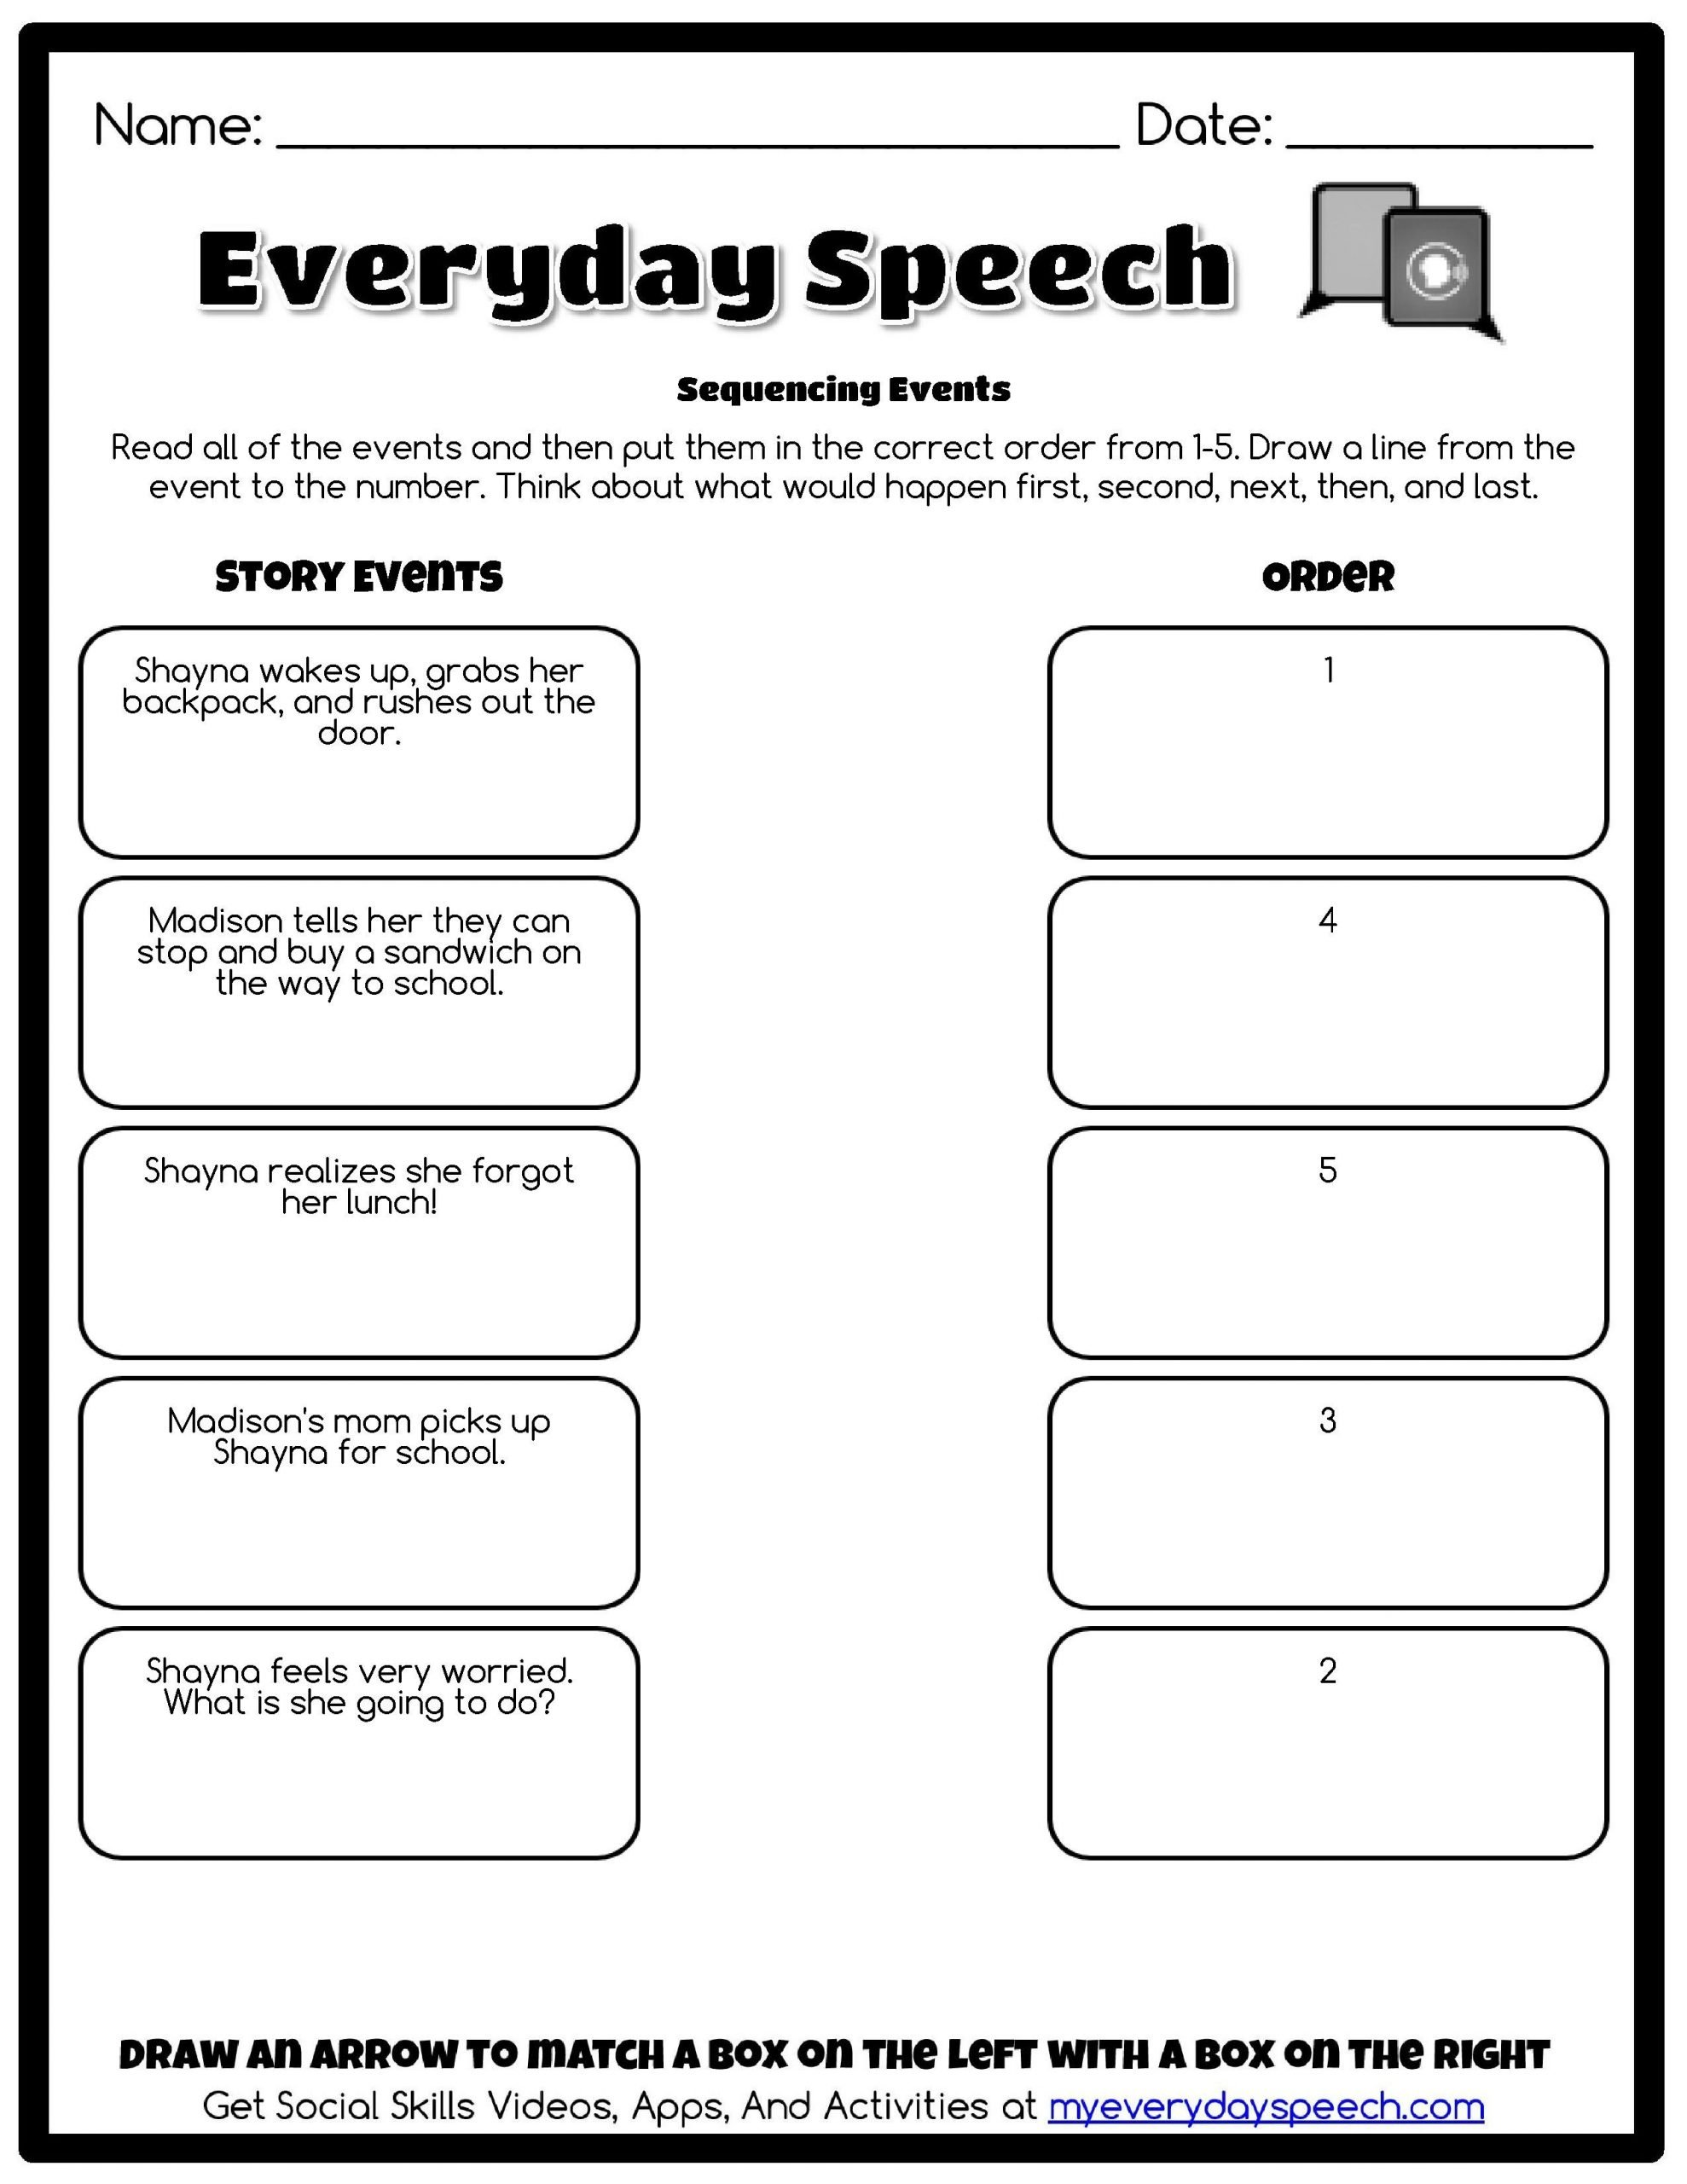 Sequencing events Worksheet Sequencing events Everyday Speech